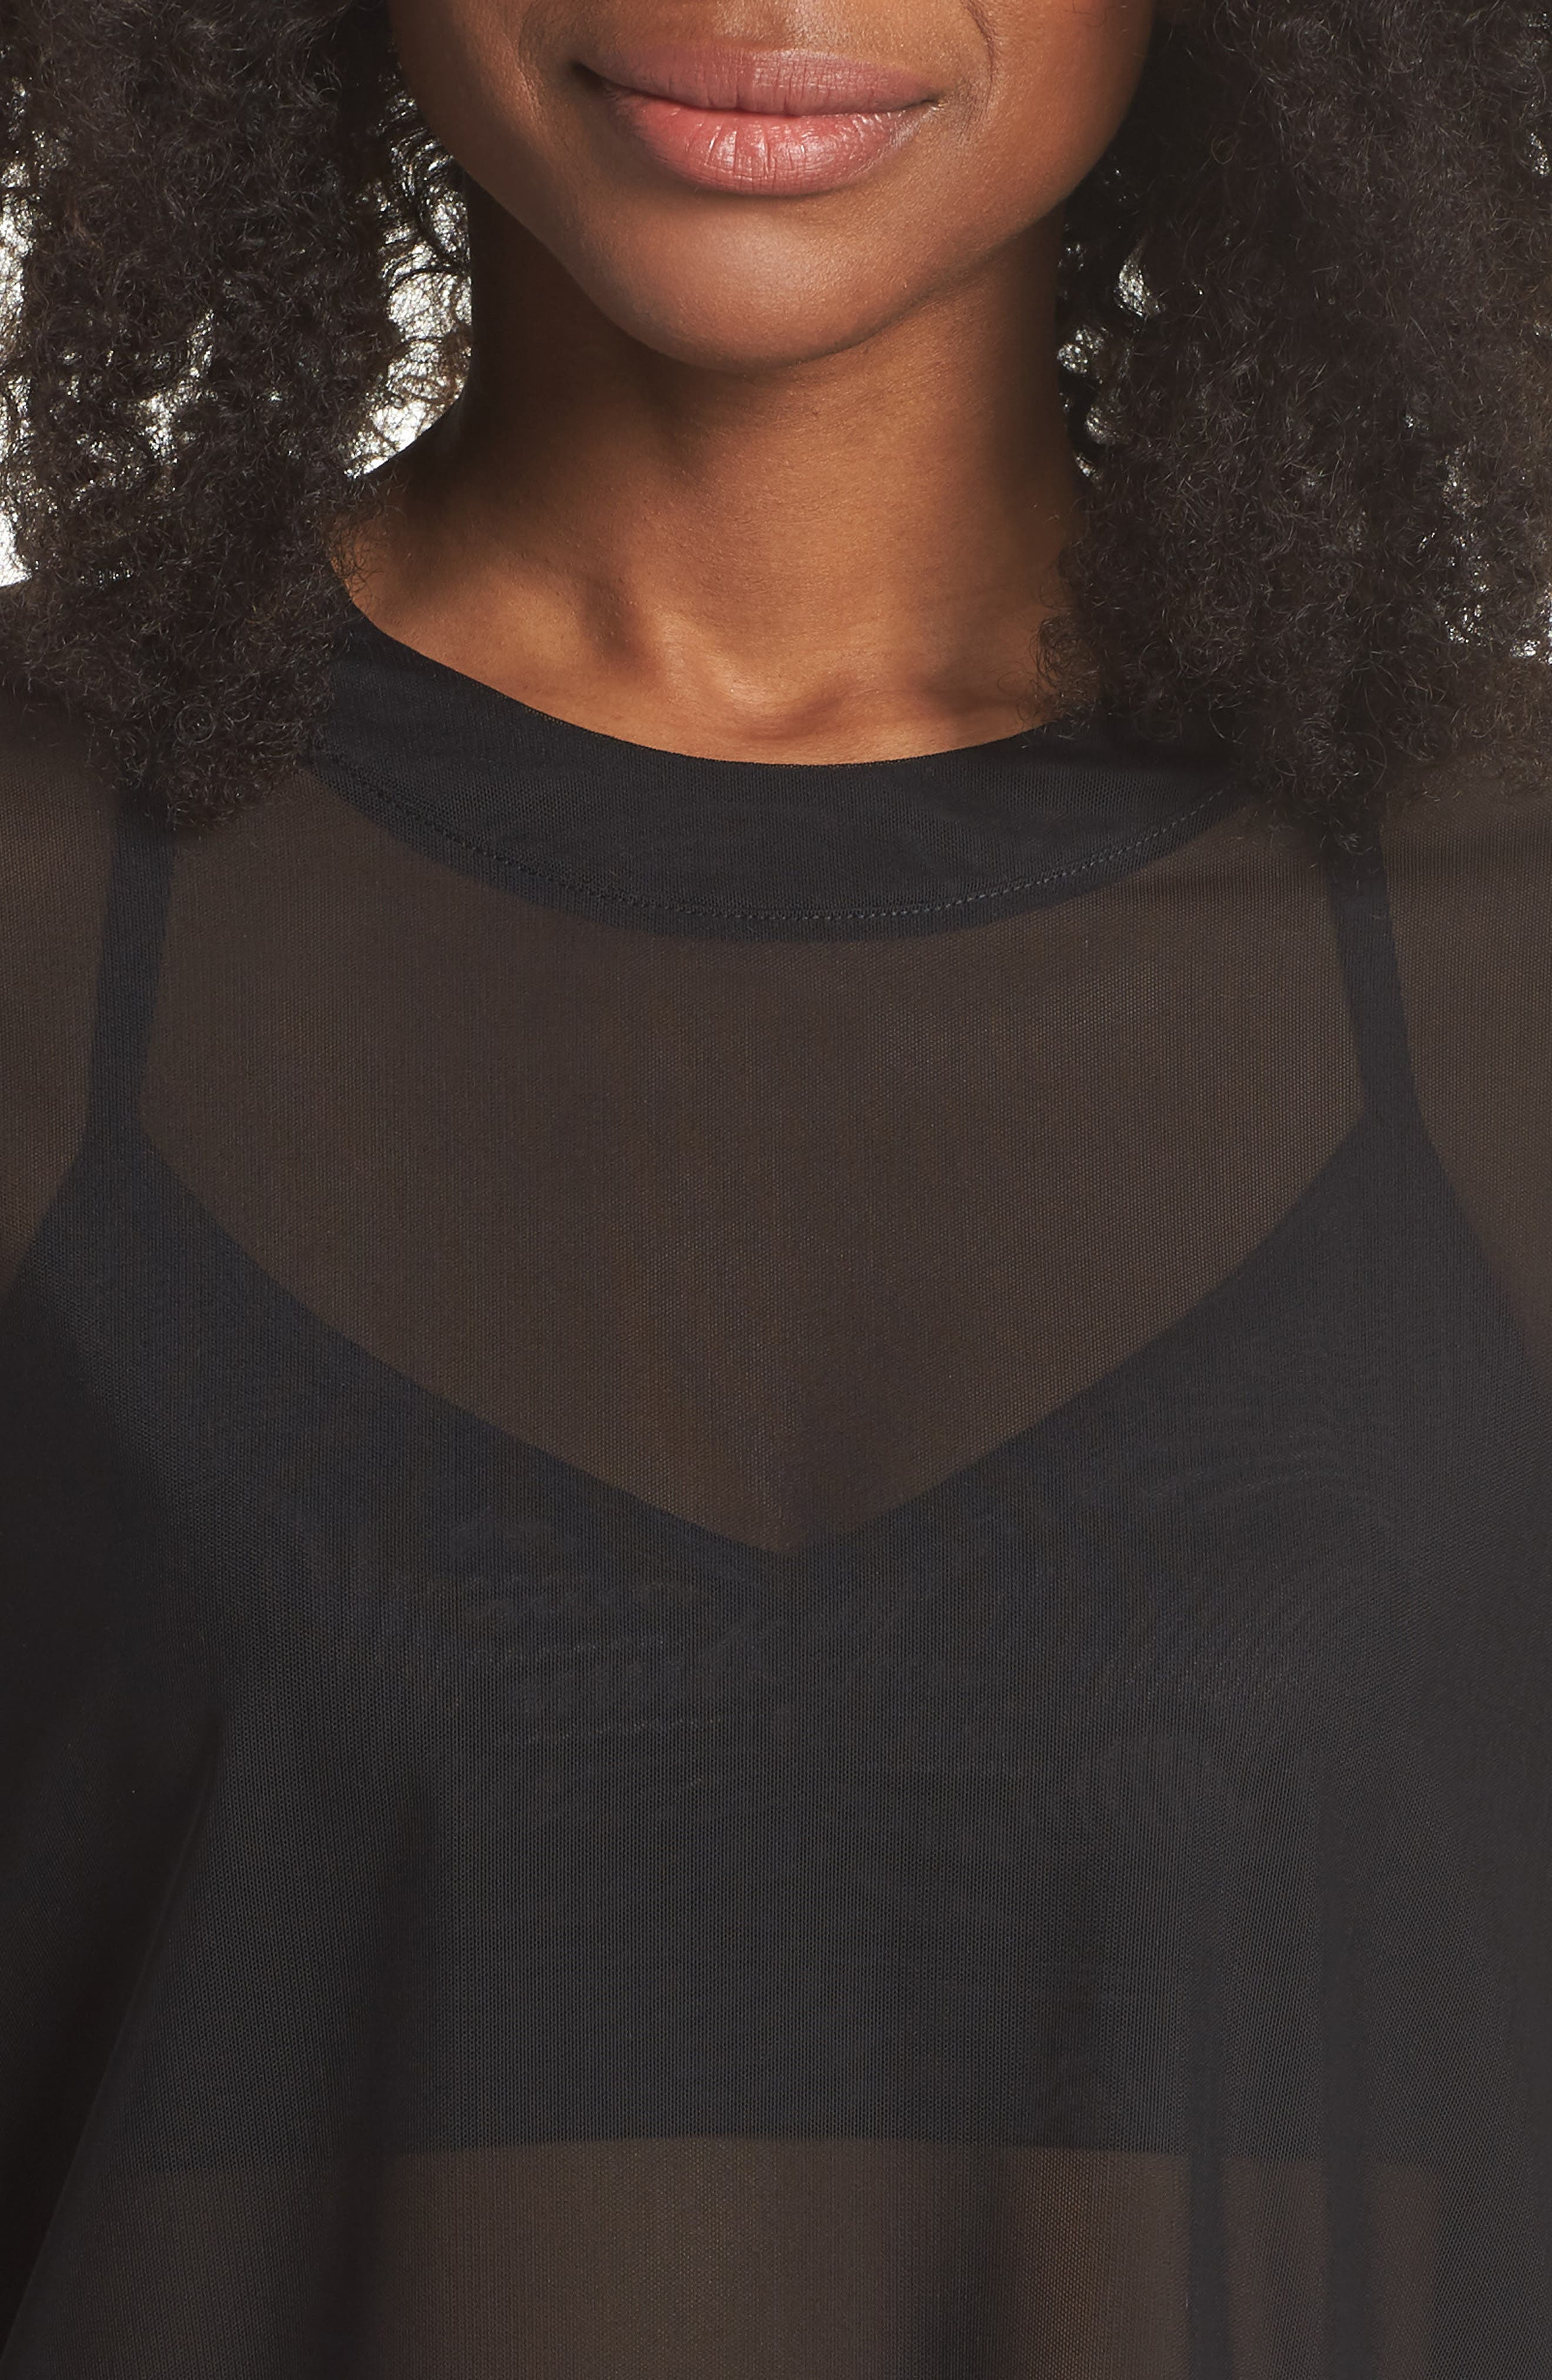 Ambiance Sheer Pullover,                             Alternate thumbnail 4, color,                             010